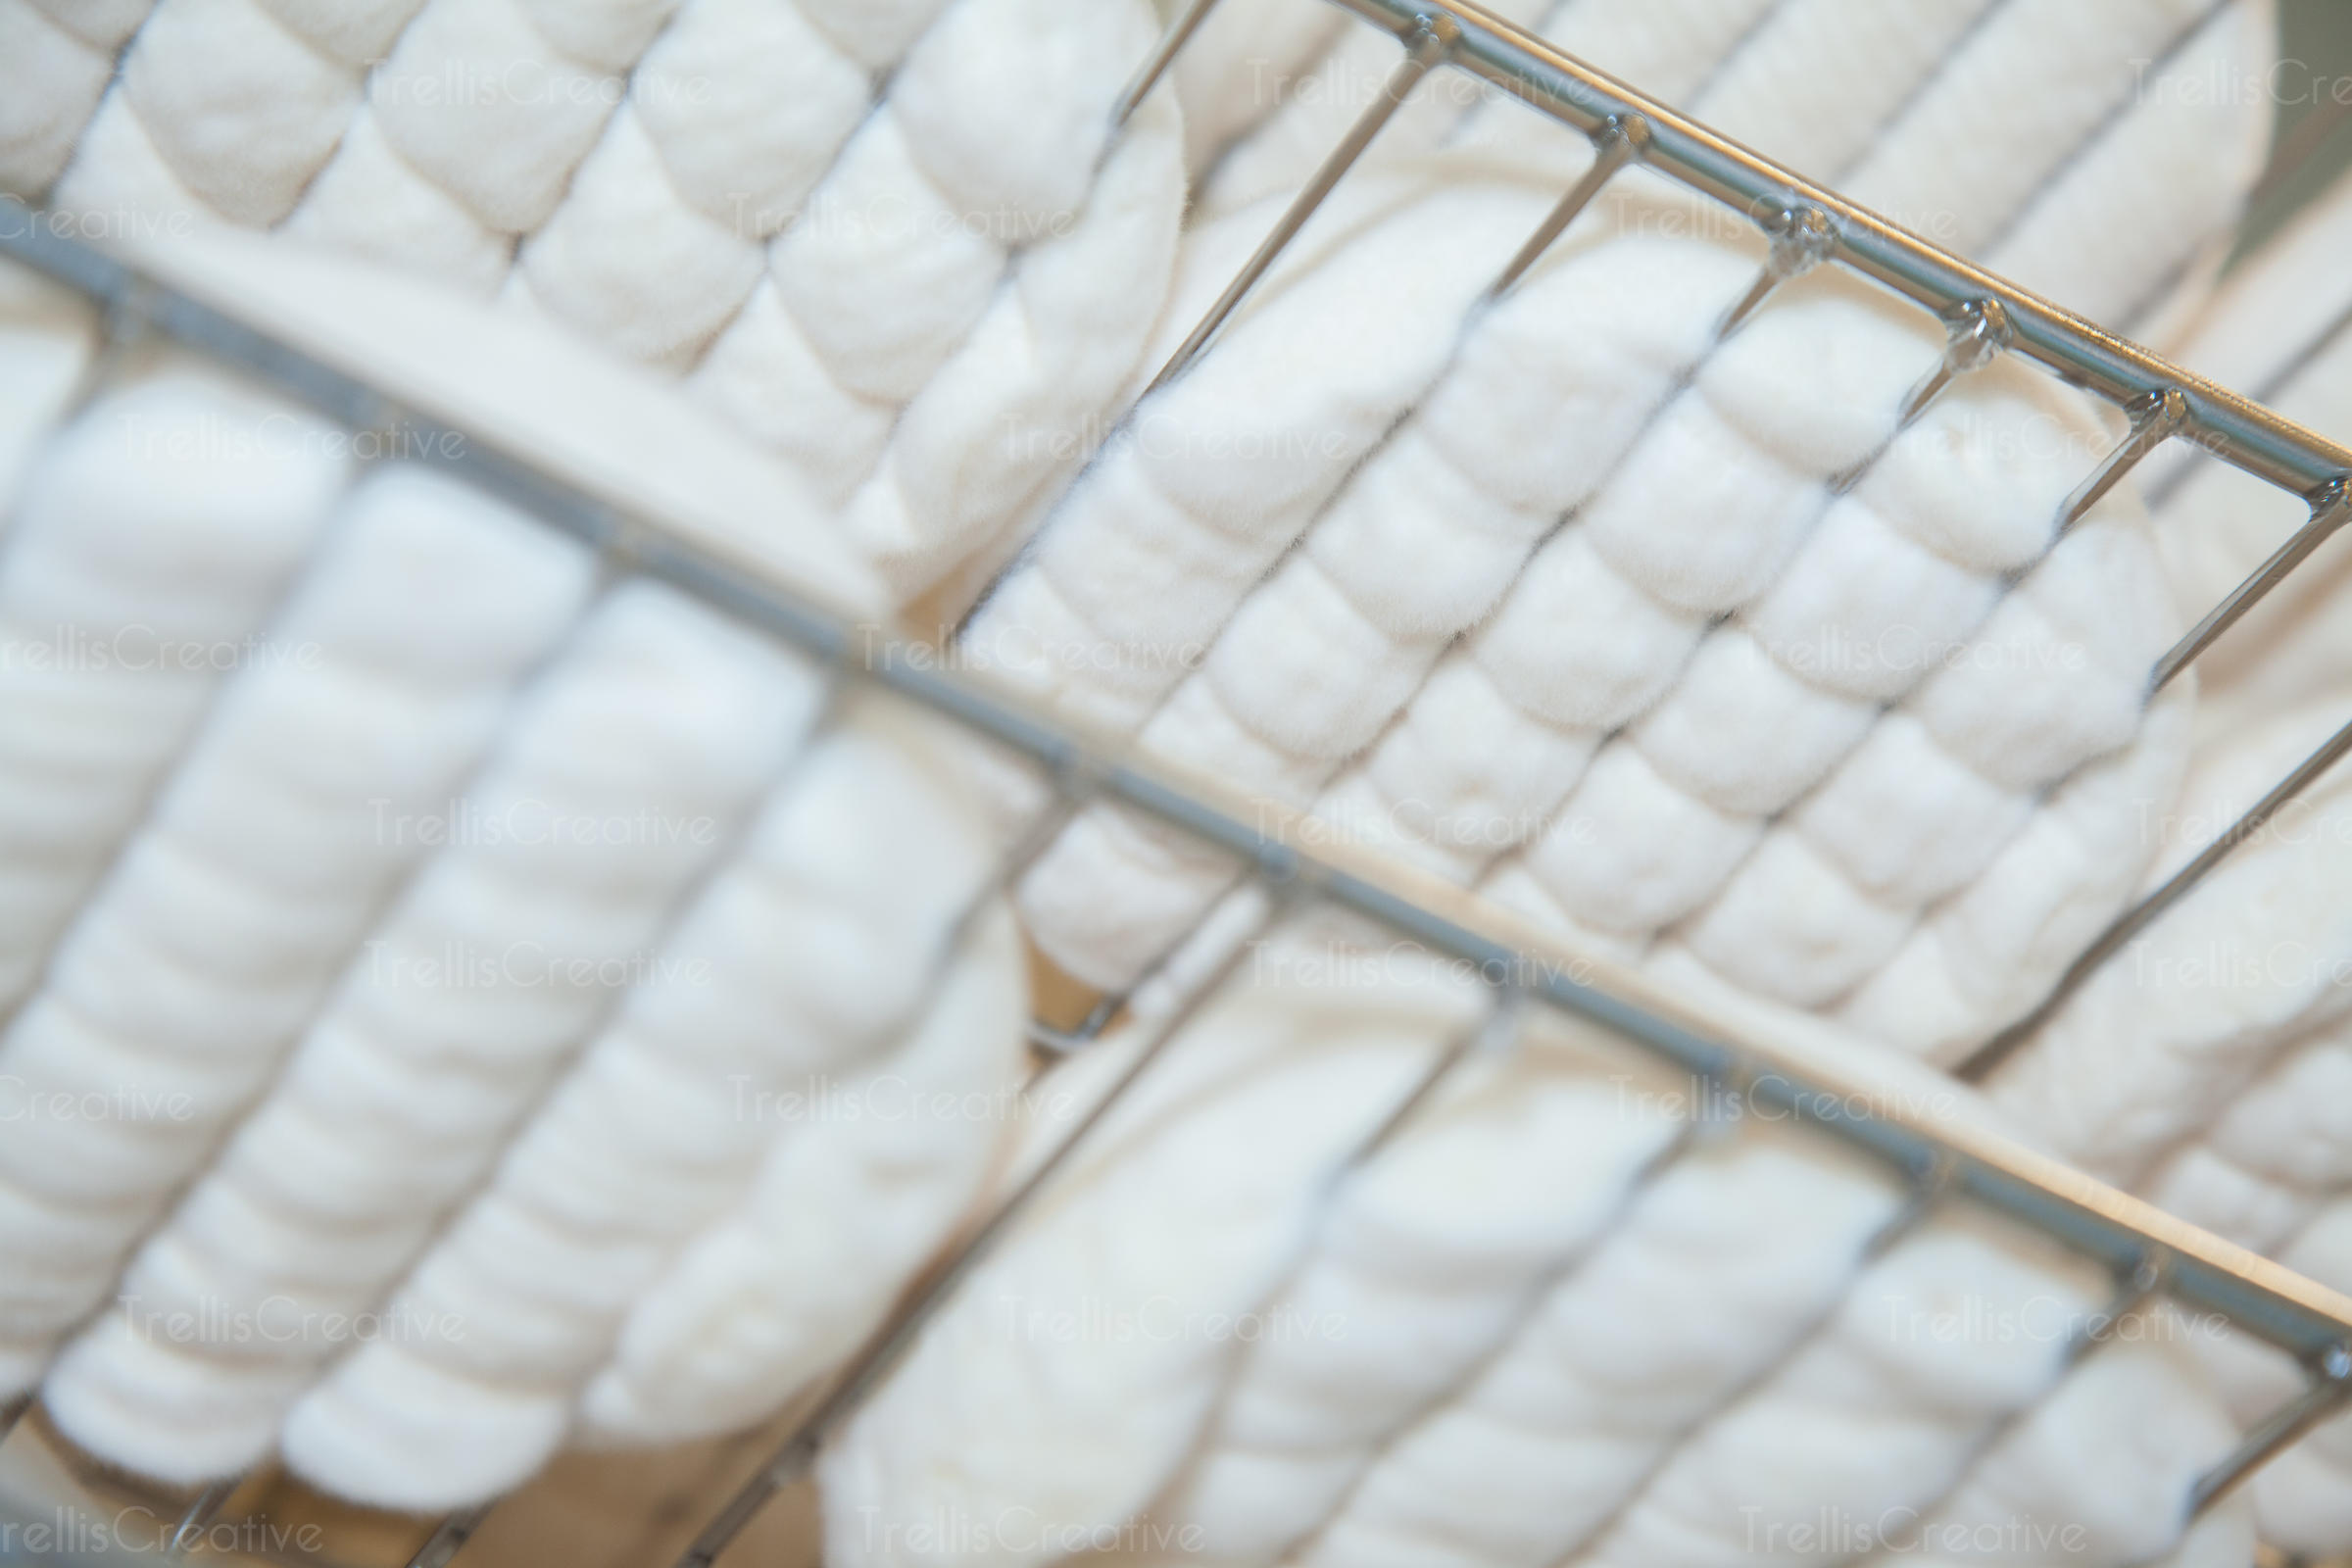 Close-up of white soft goat cheese on metal rack